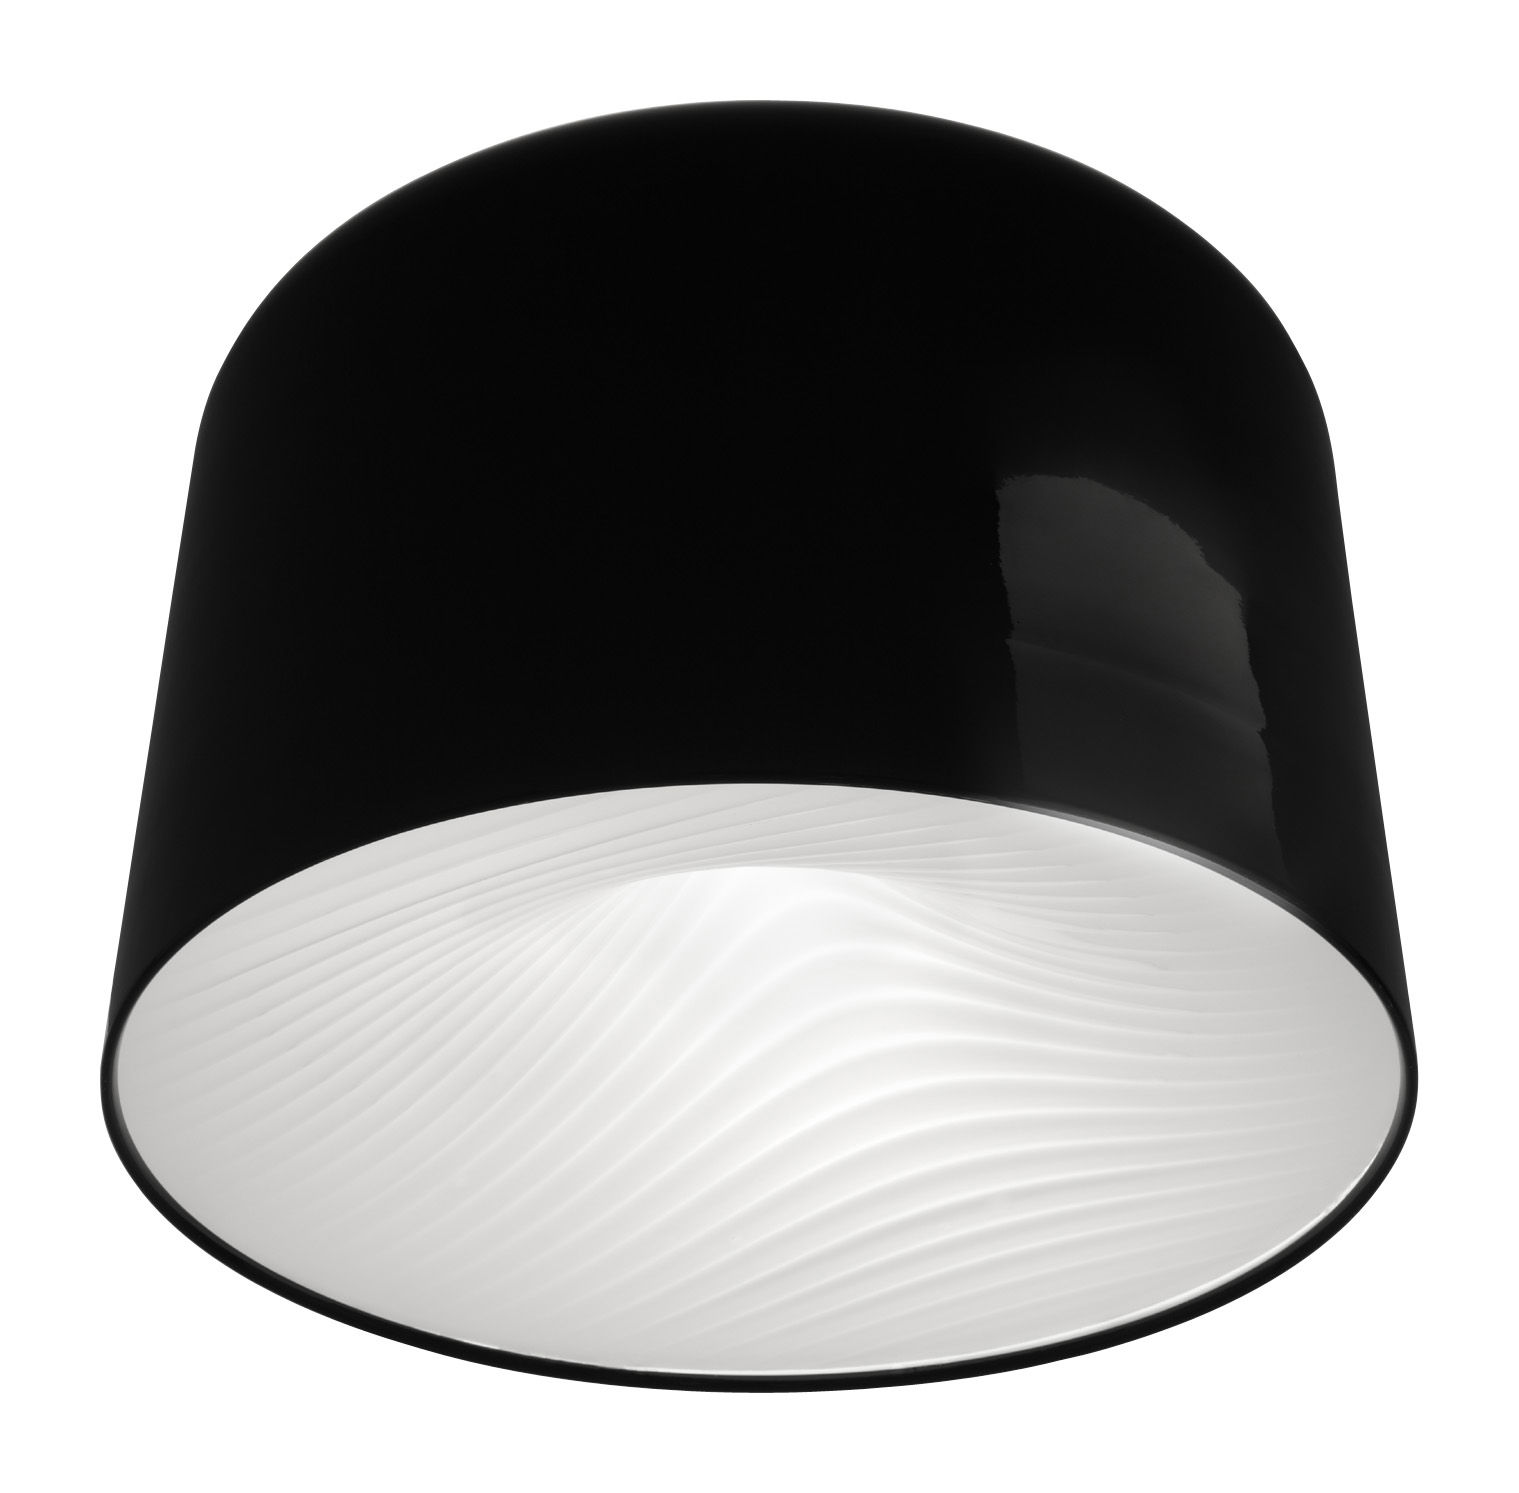 polinnia 60 cm artemide deckenleuchte. Black Bedroom Furniture Sets. Home Design Ideas